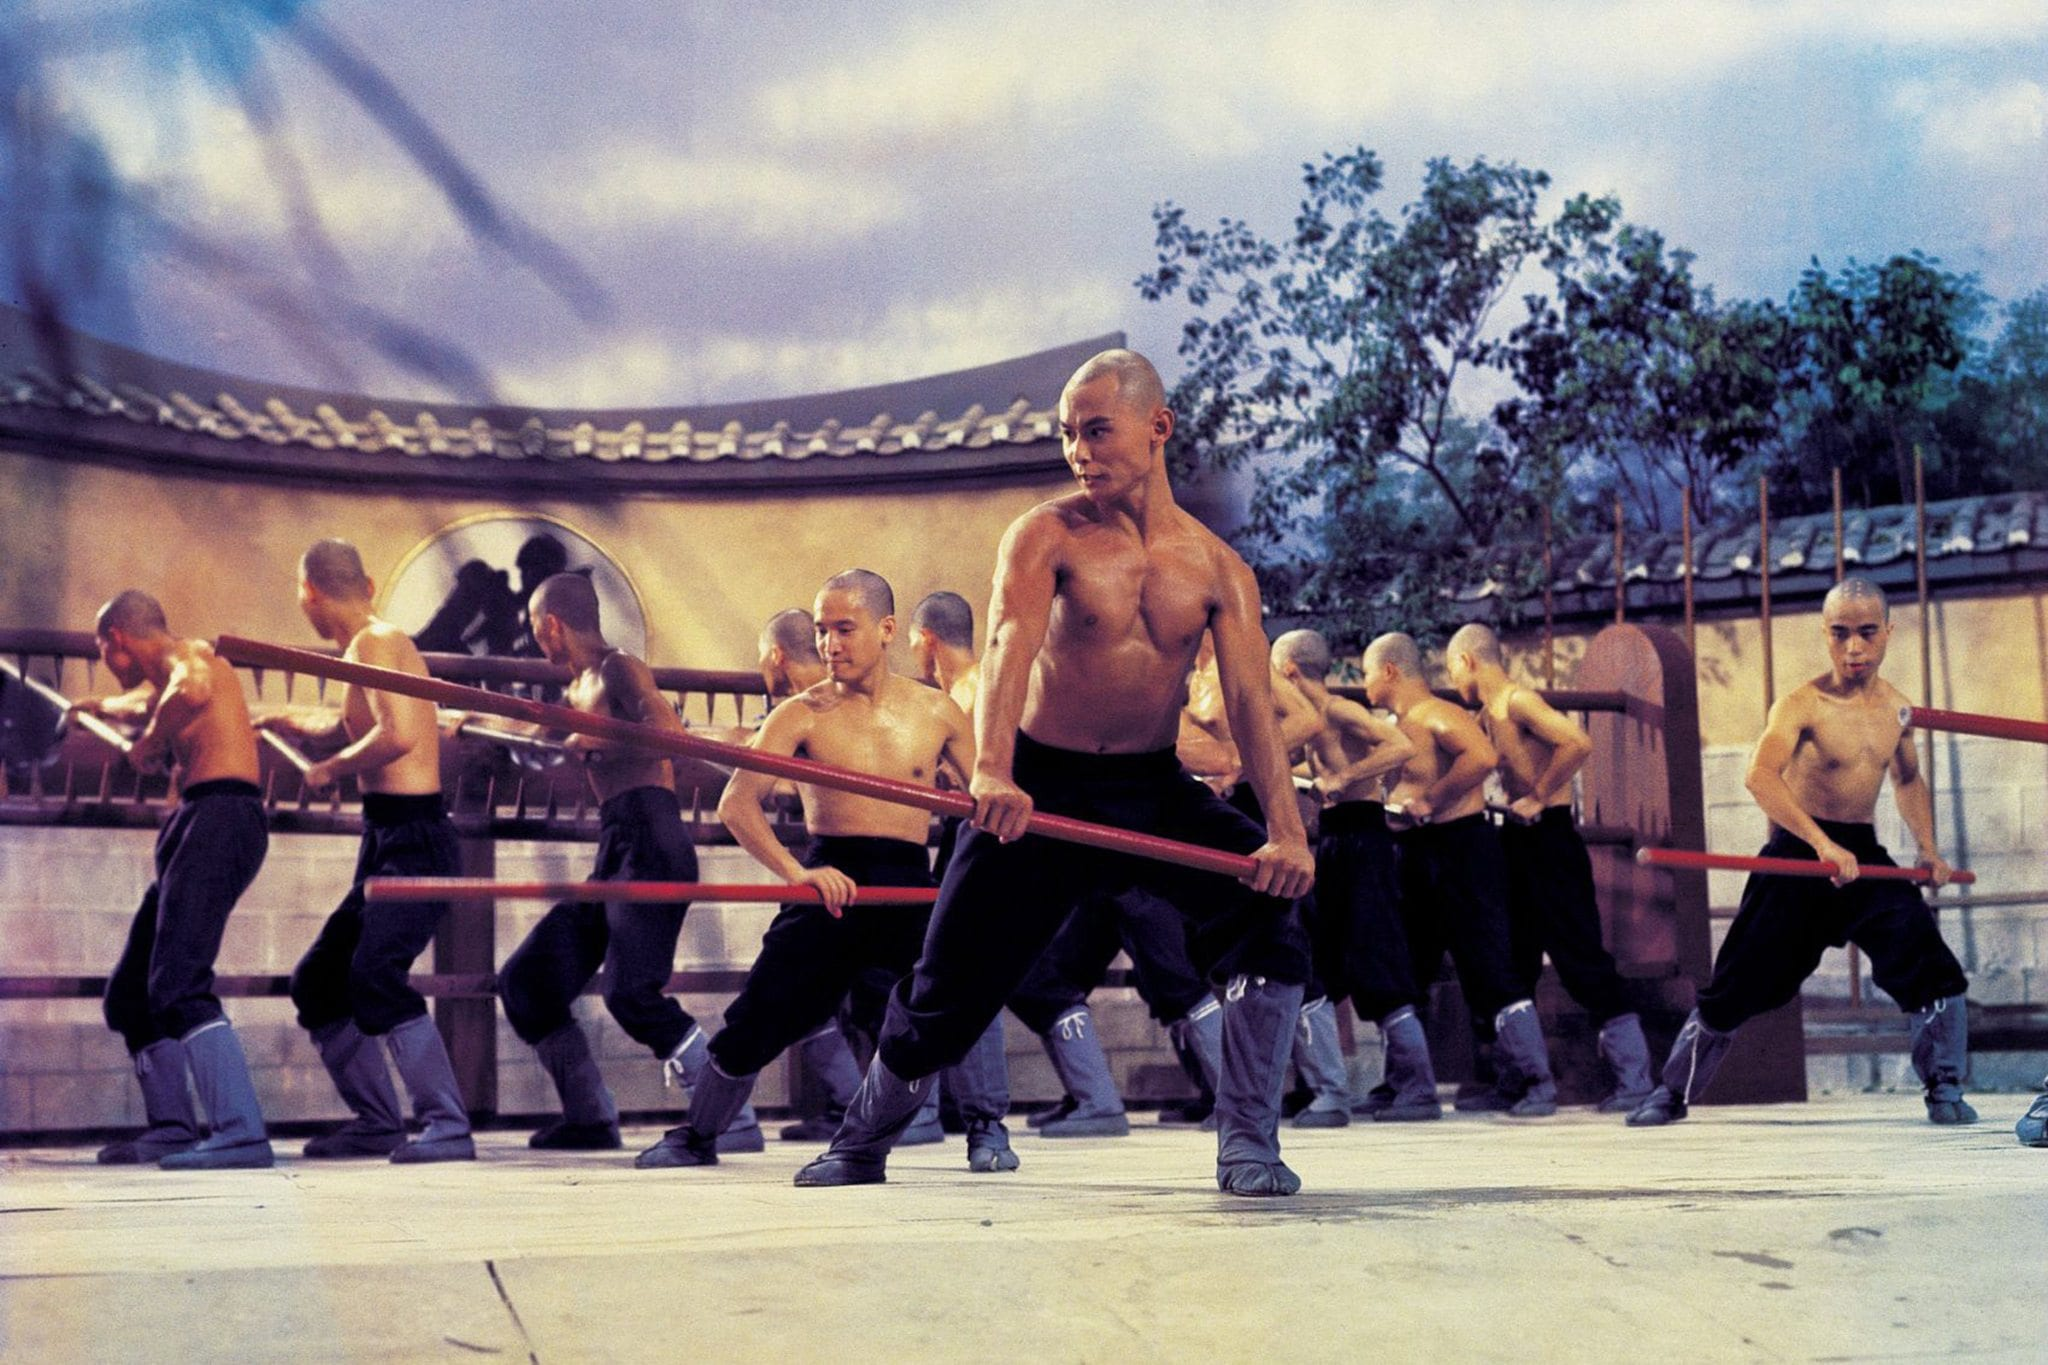 The 36th Chamber of Shaolin film still